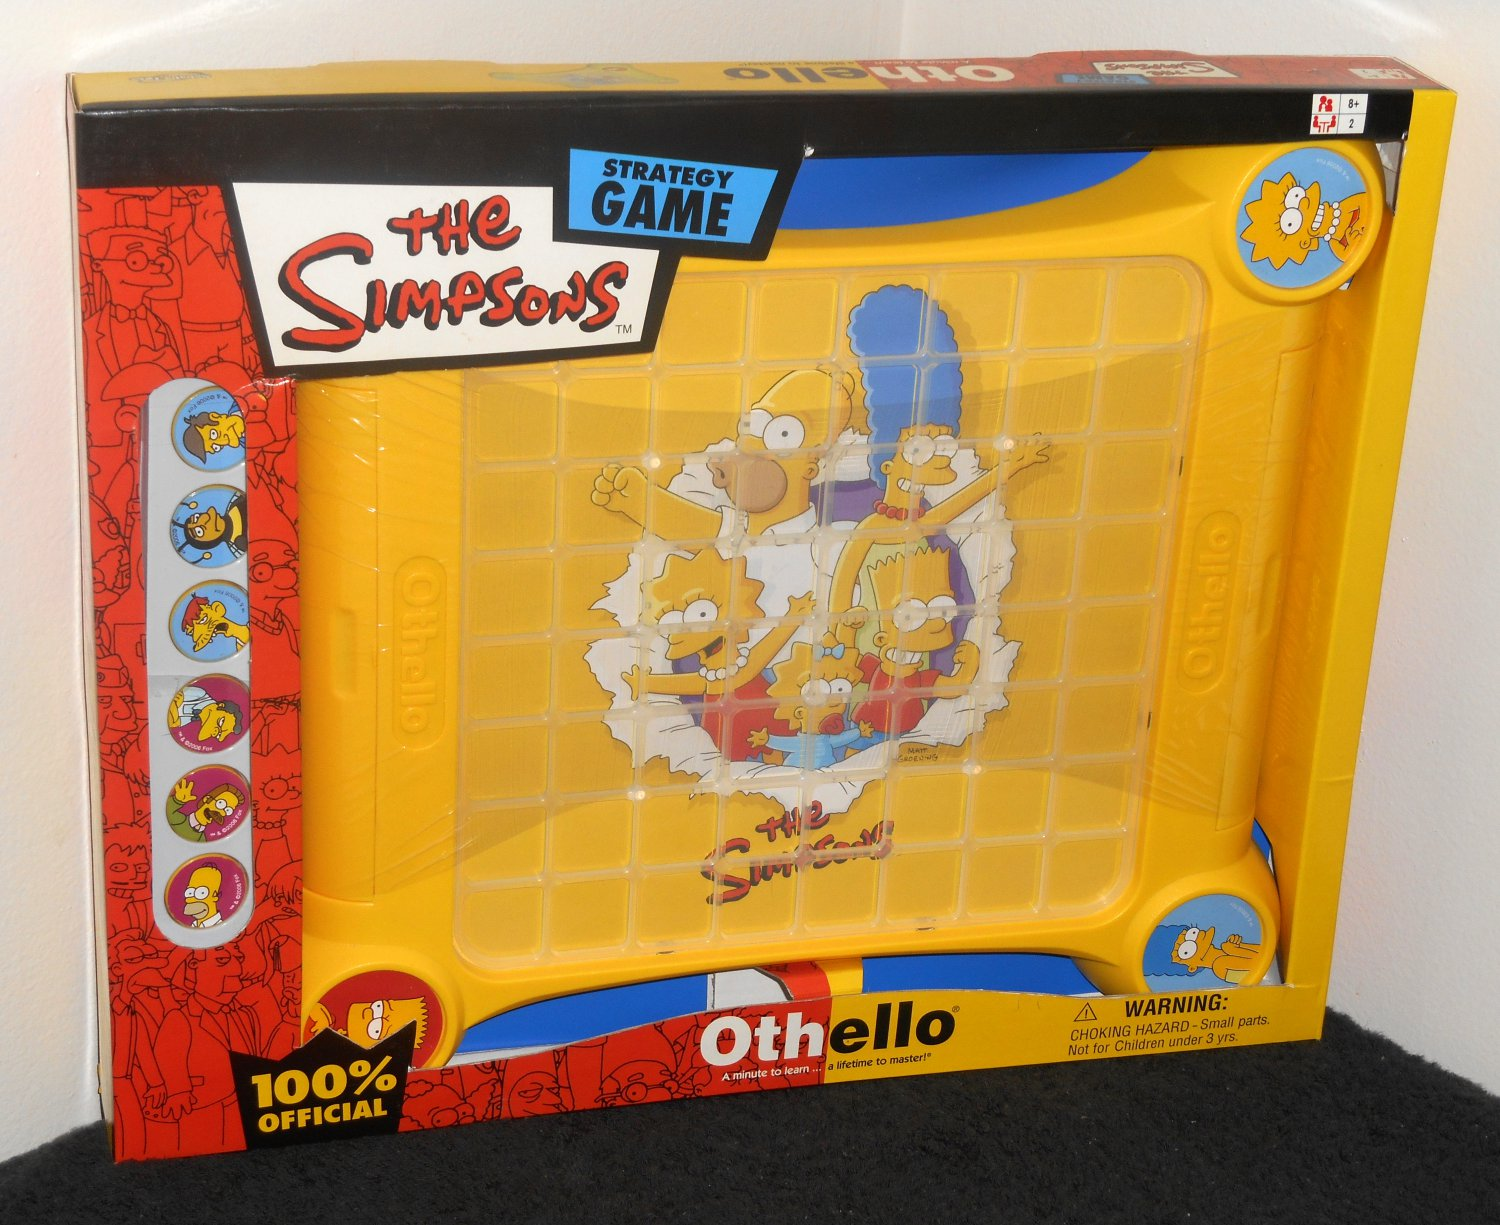 The Simpsons Edition Othello Strategy Game Sababa Toys 767 NIB New in Box Factory Sealed